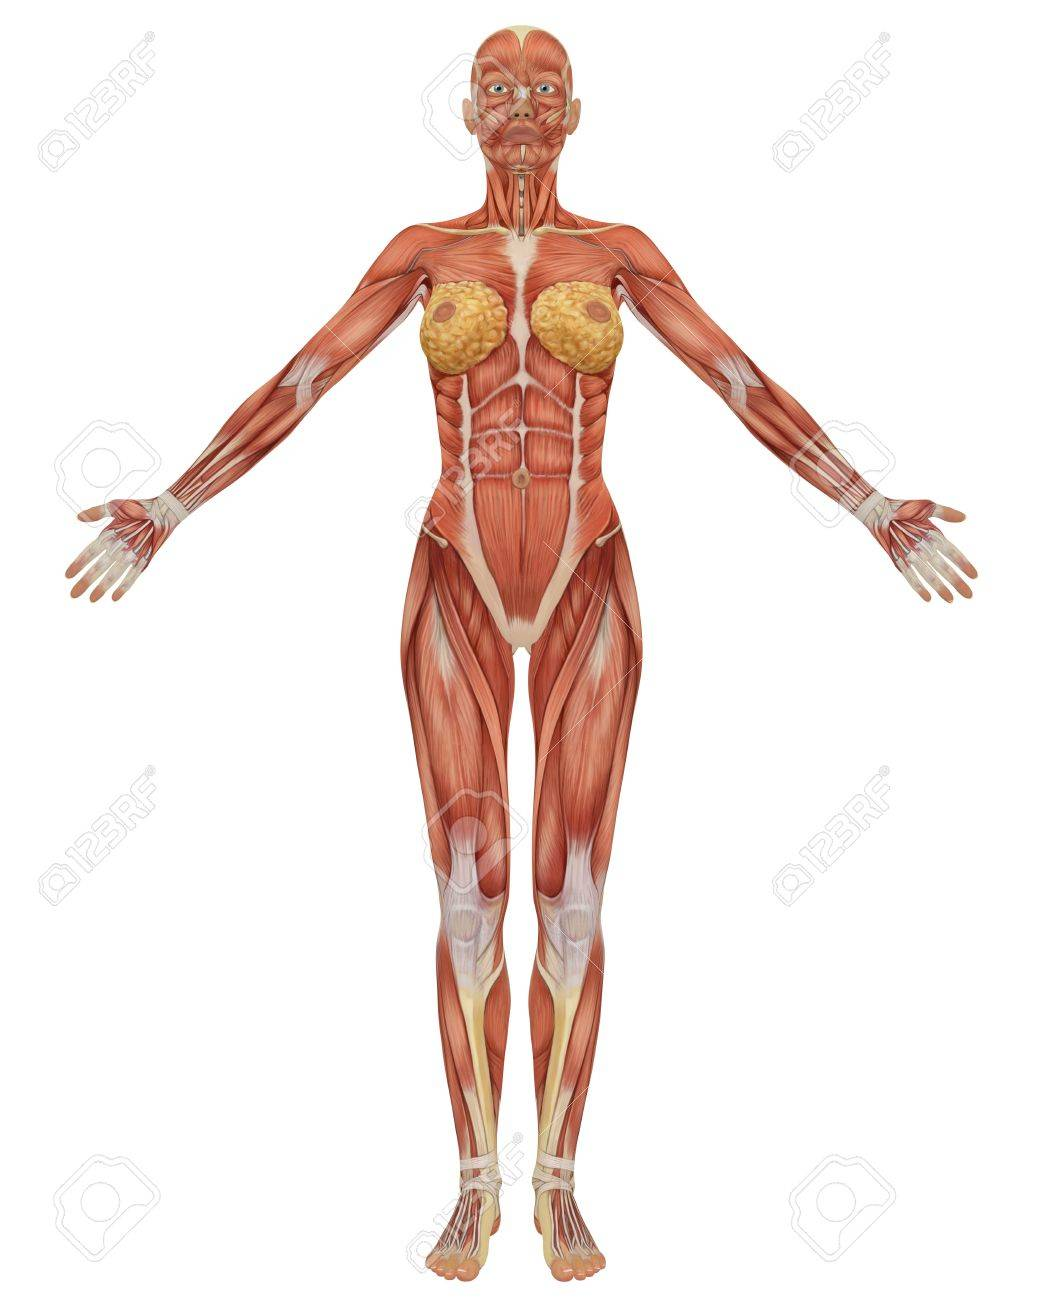 Front view of the female muscular anatomy. Very educational. - 6910370